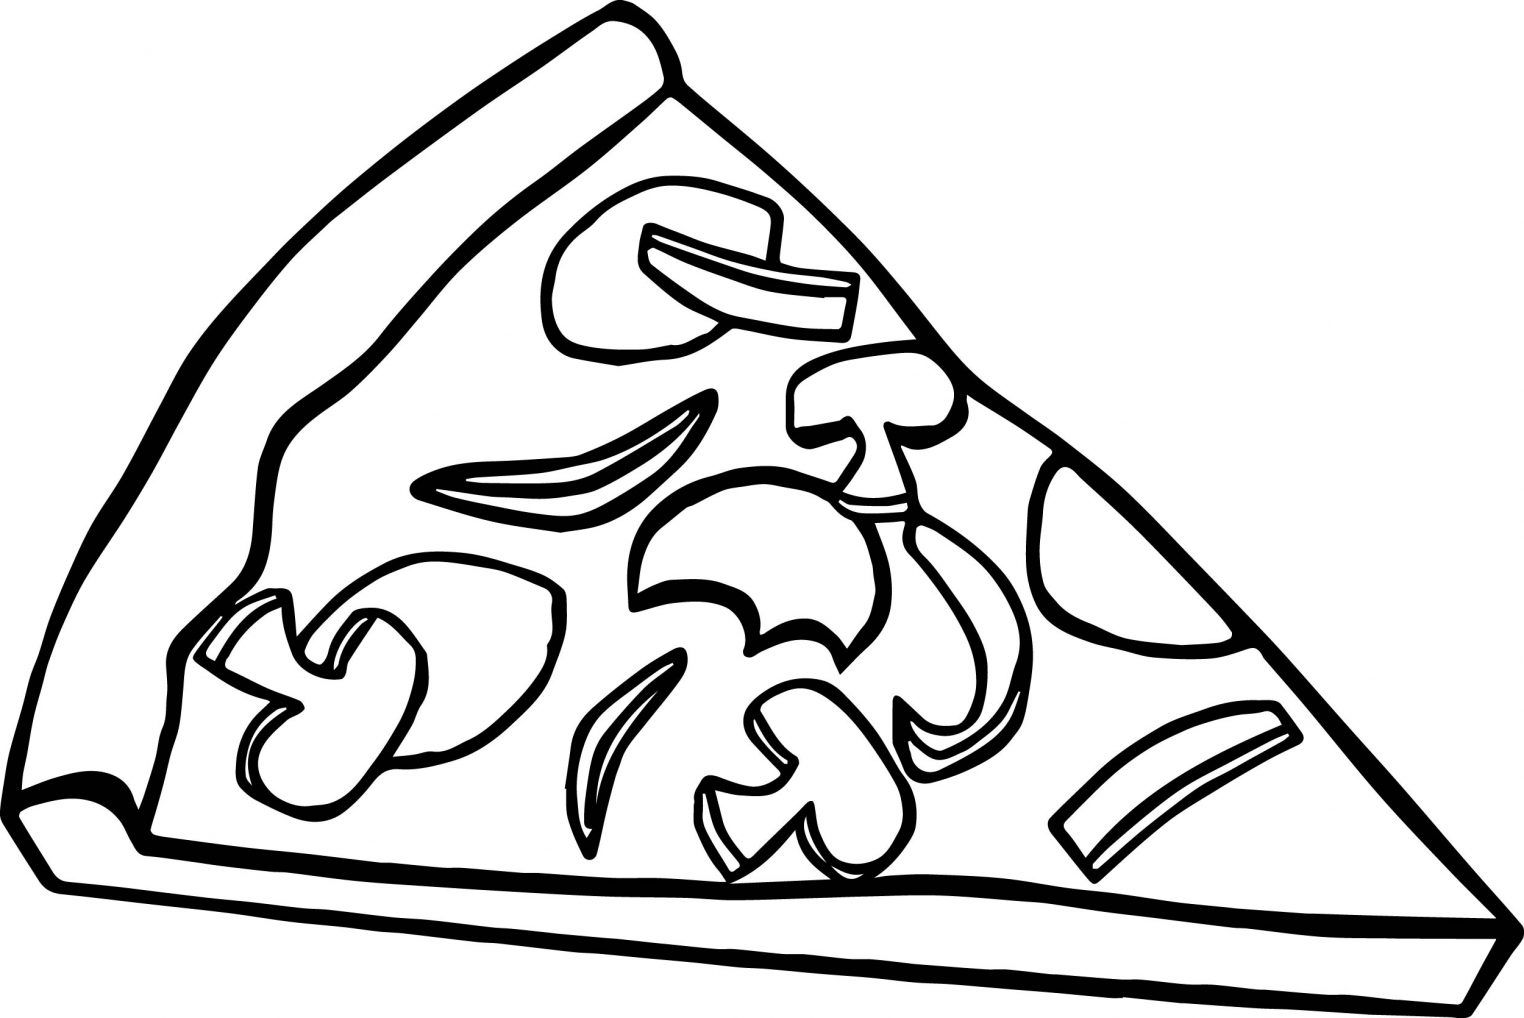 Top 15 Pizza Coloring Pages Only Coloring Pages Pizza Coloring Page Fruit Coloring Pages Coloring Pages